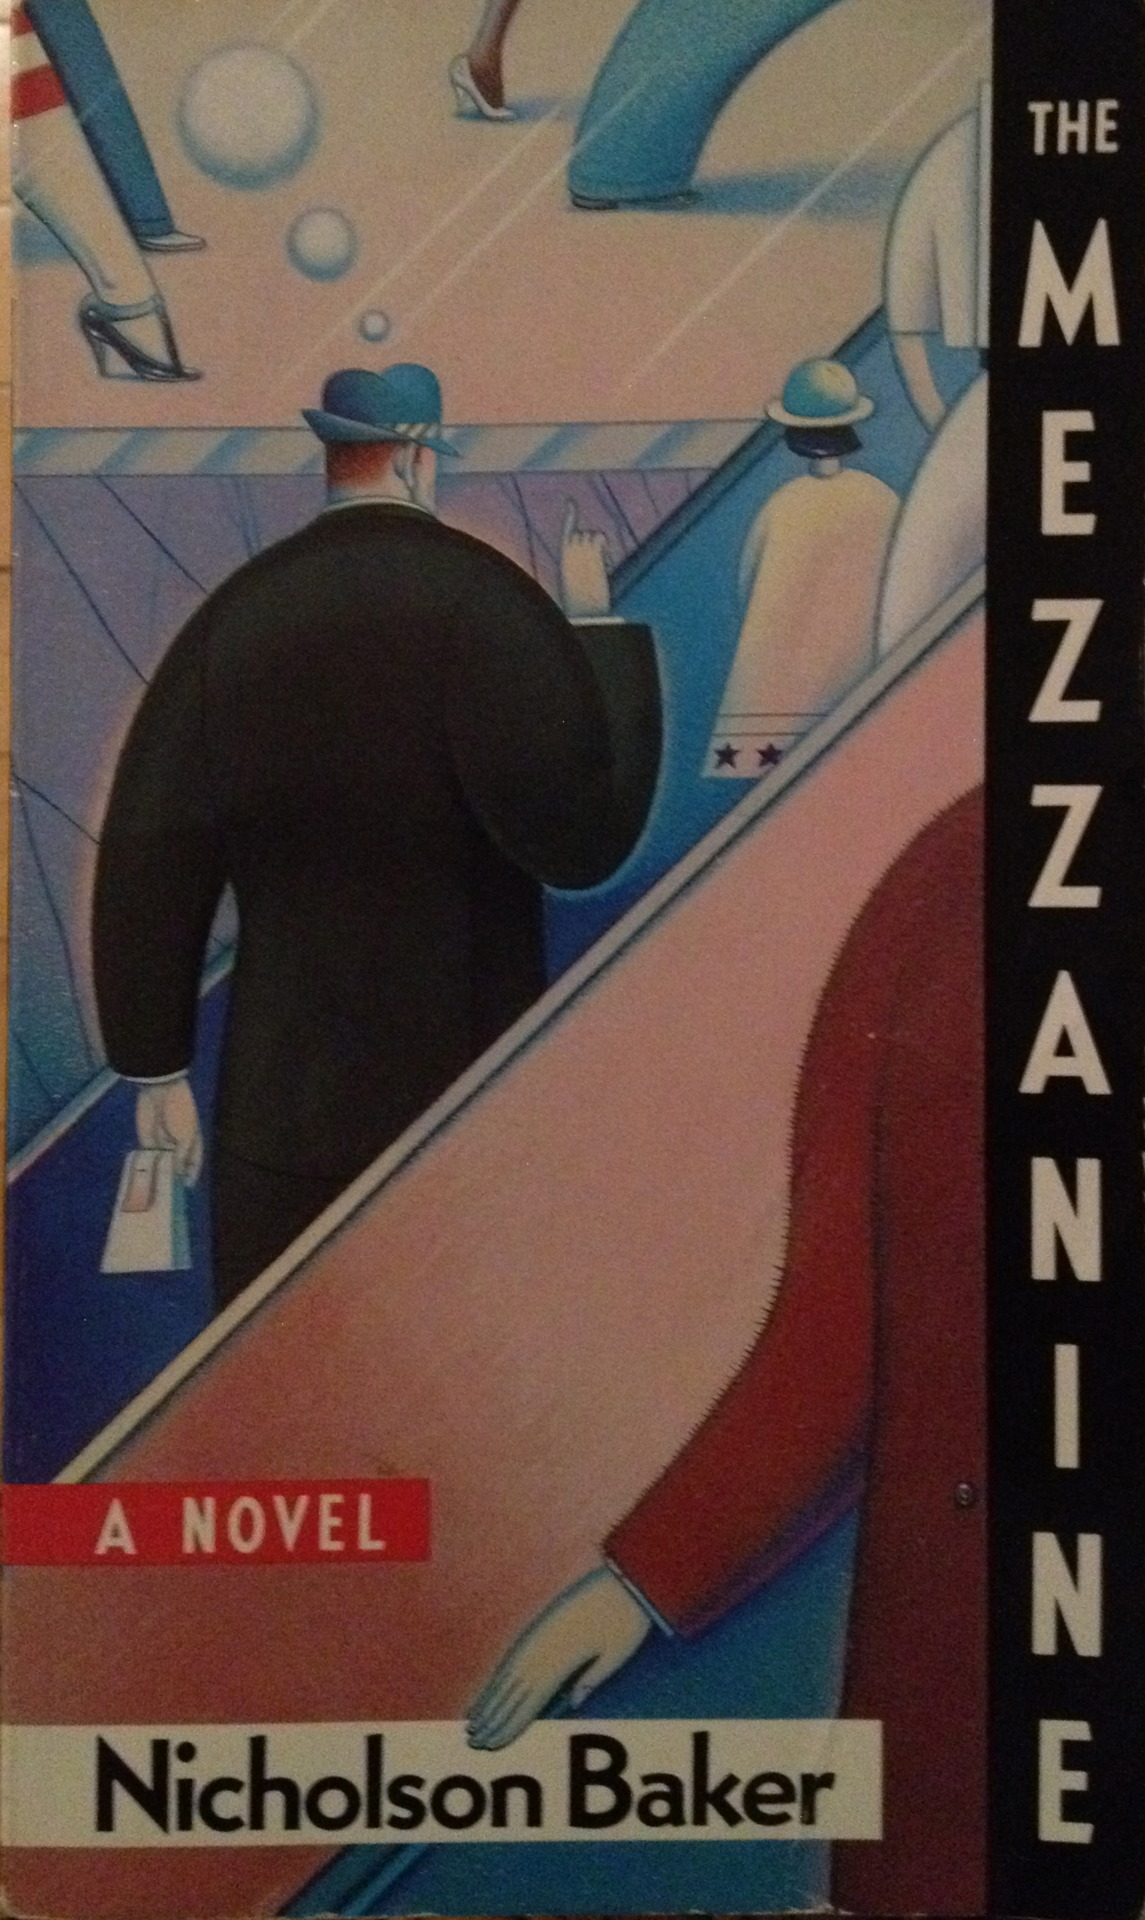 All 15 chapters of this 135-page novel with footnotes take place in the mind of the protagonist as he ascends an escalator in his office building's lobby. There is quite a lot about shoe-tying and laces, also.  Nicholson Baker  became much more famous, and his books much stranger, after this first effort in 1986.      [Originally posted on my discontinued This Old Book Tumblr.]